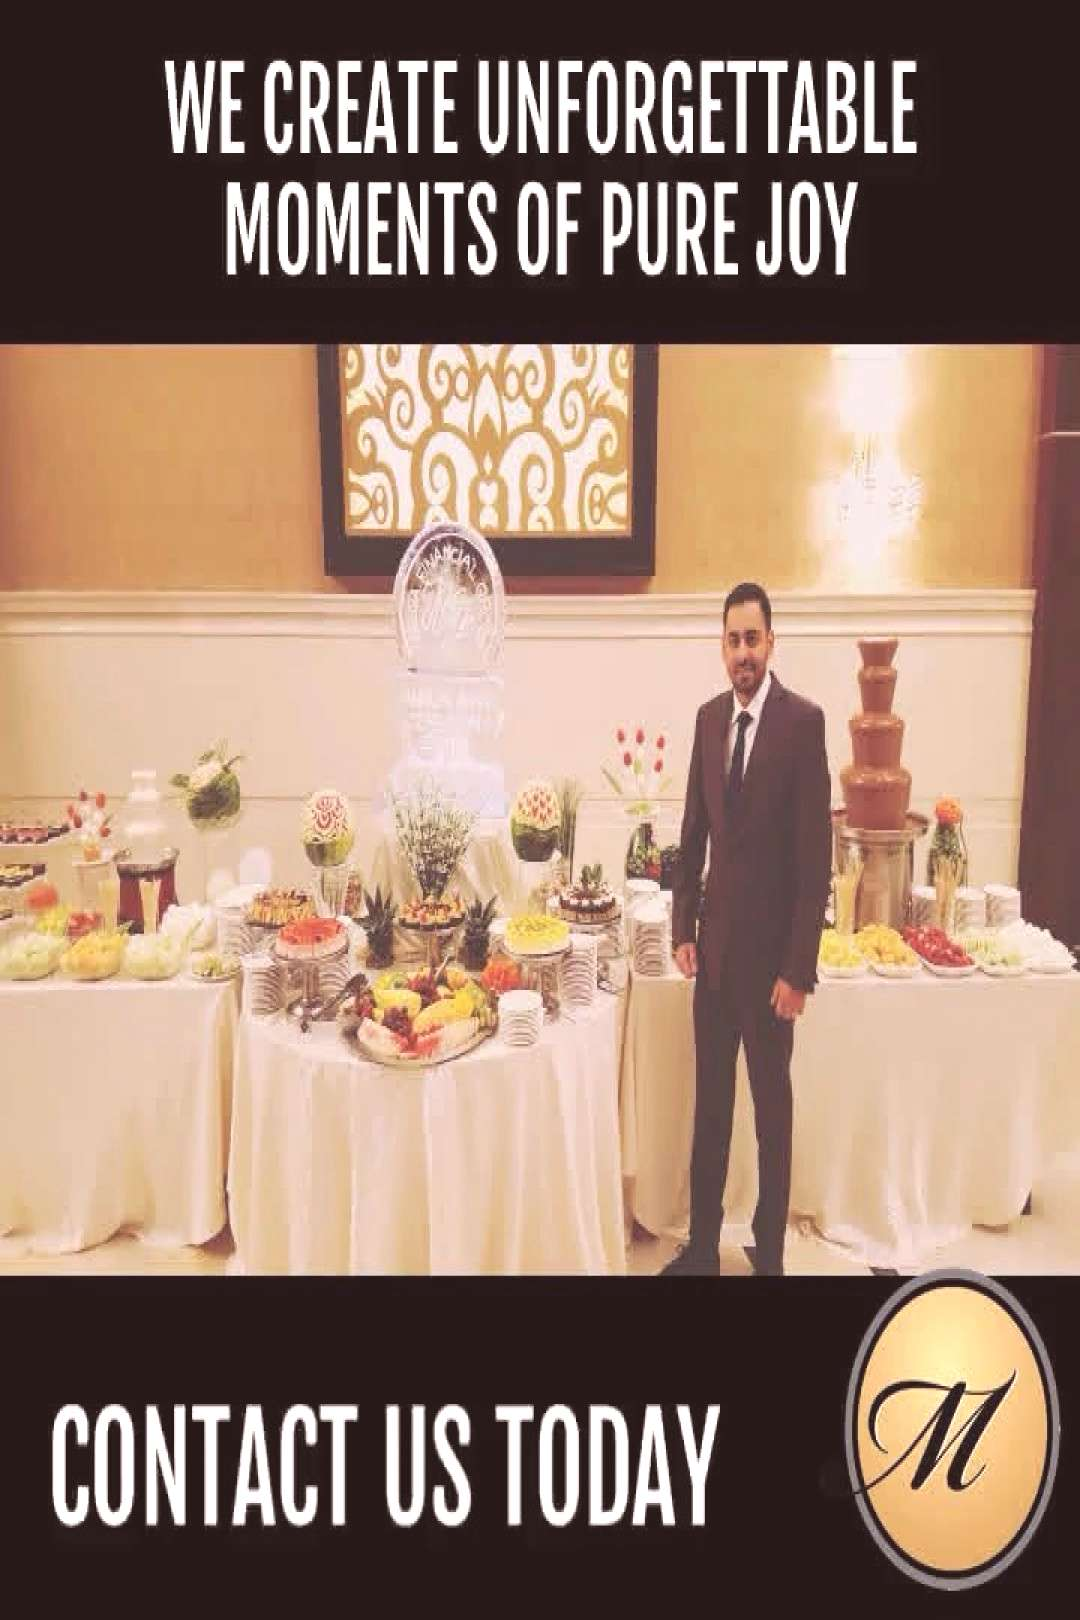 Our Lavish Dessert table to make your wedding memories even more